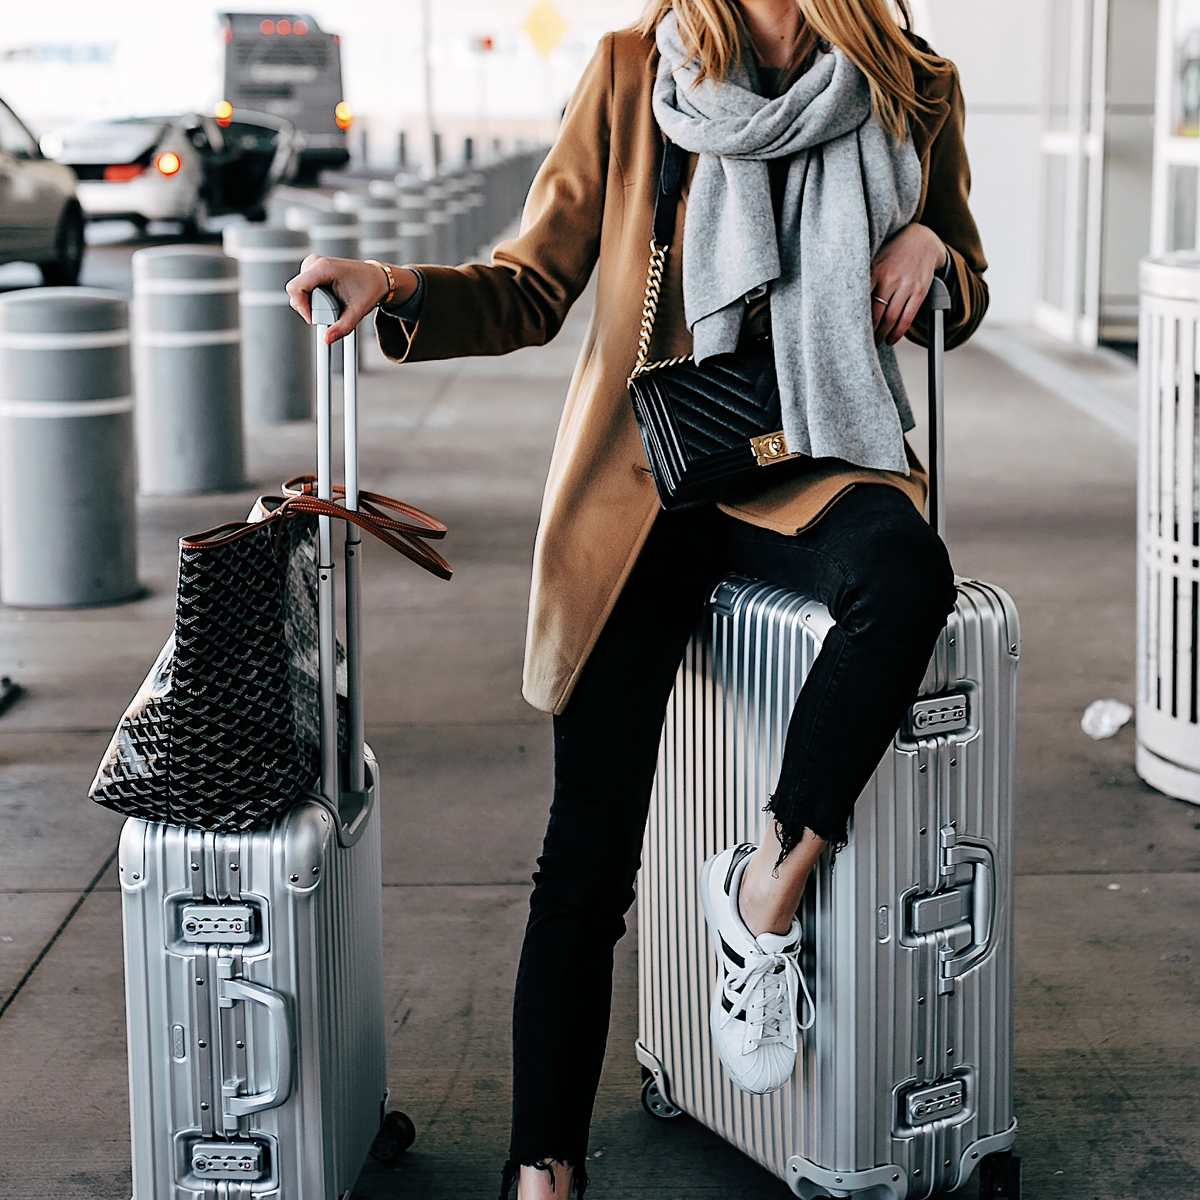 Woman in chic airport outfit with luggage